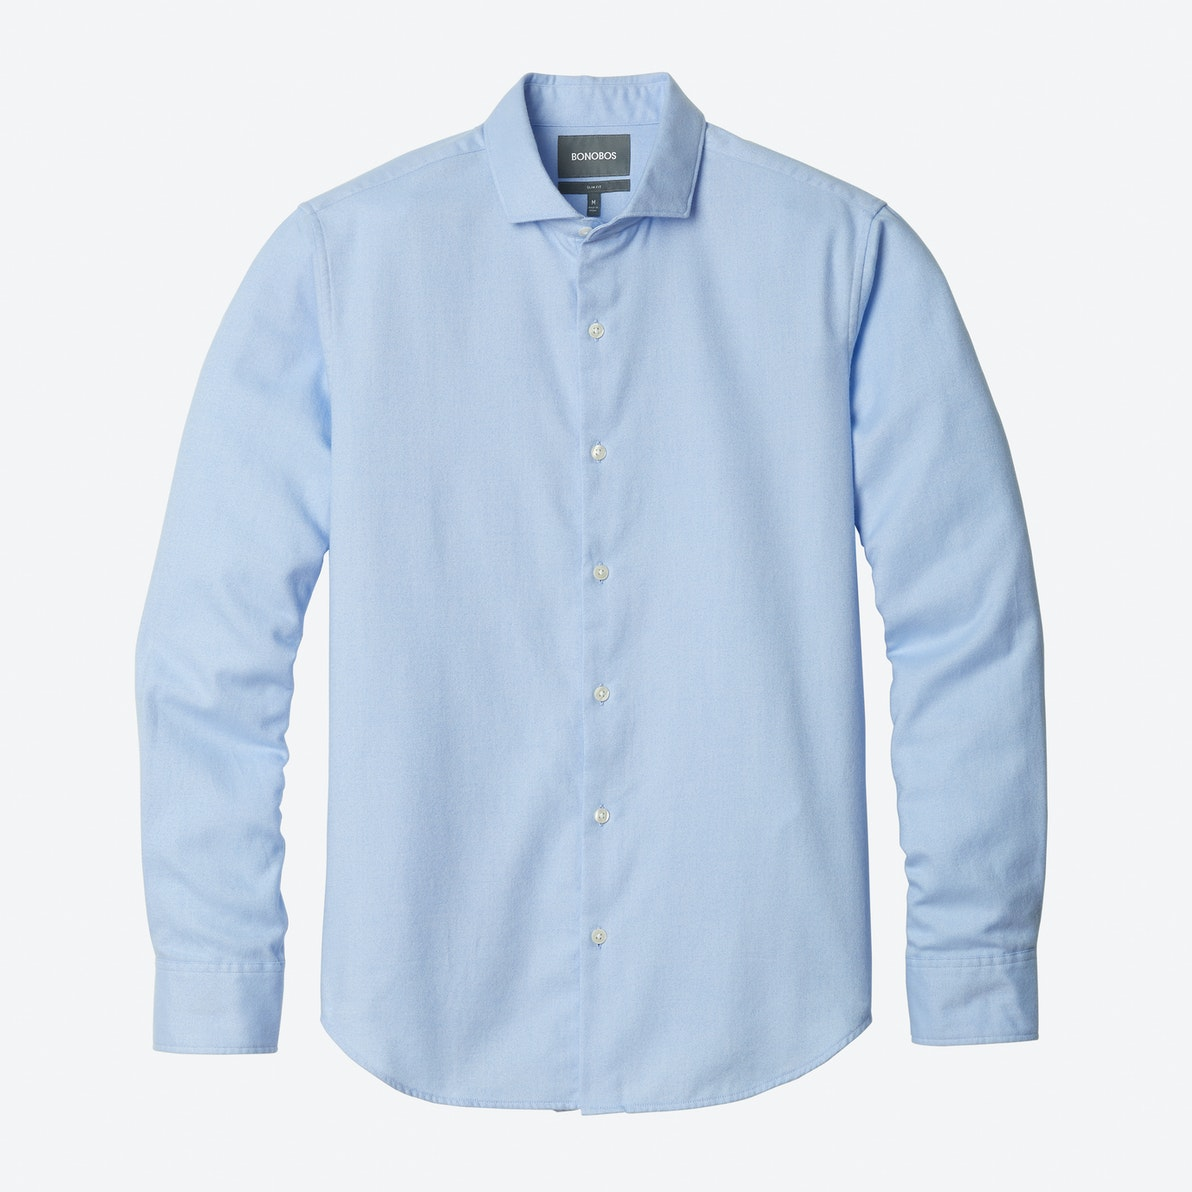 Bonobos Twill Unbutton Down Shirt